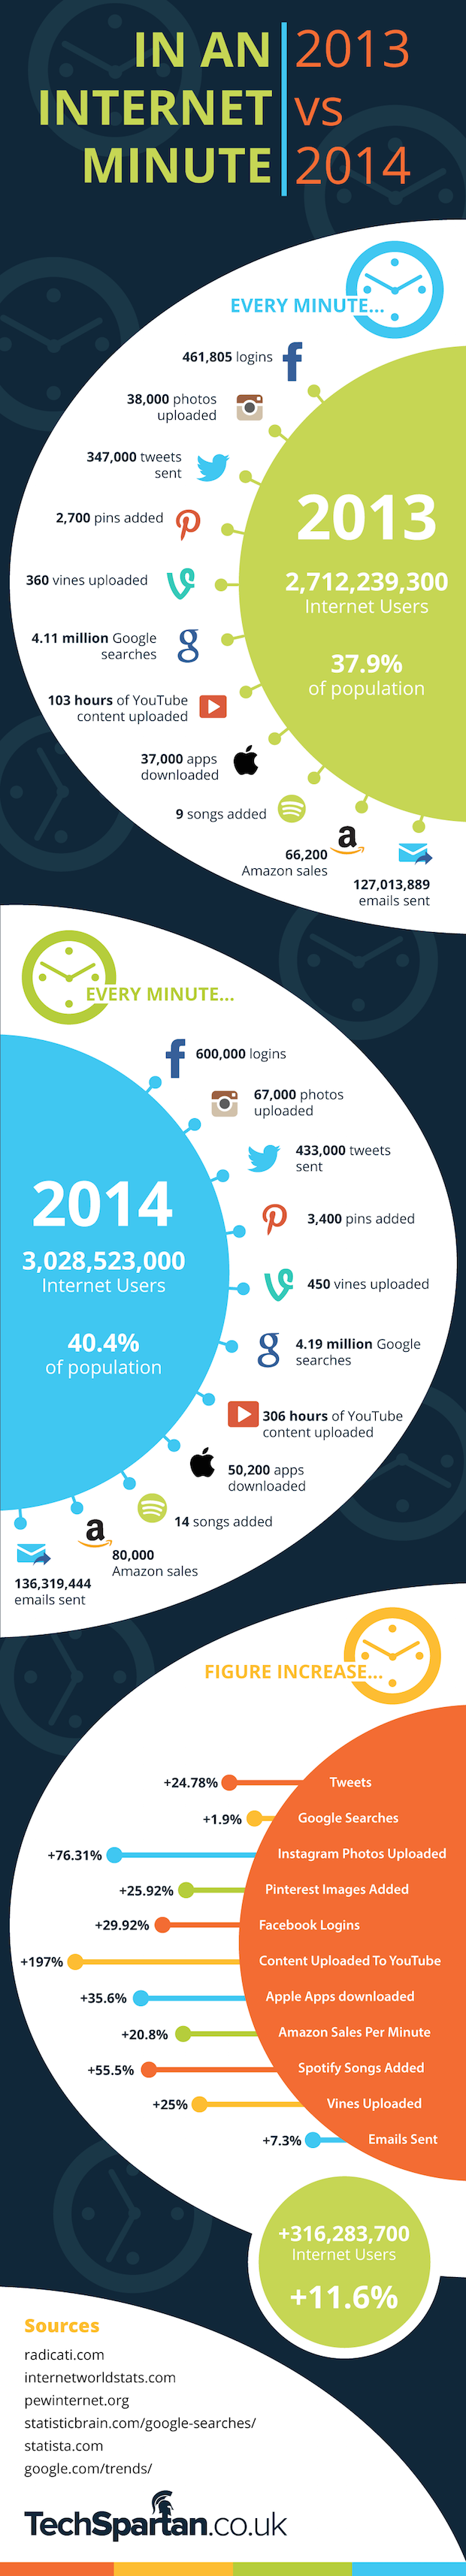 Infographic internet minute